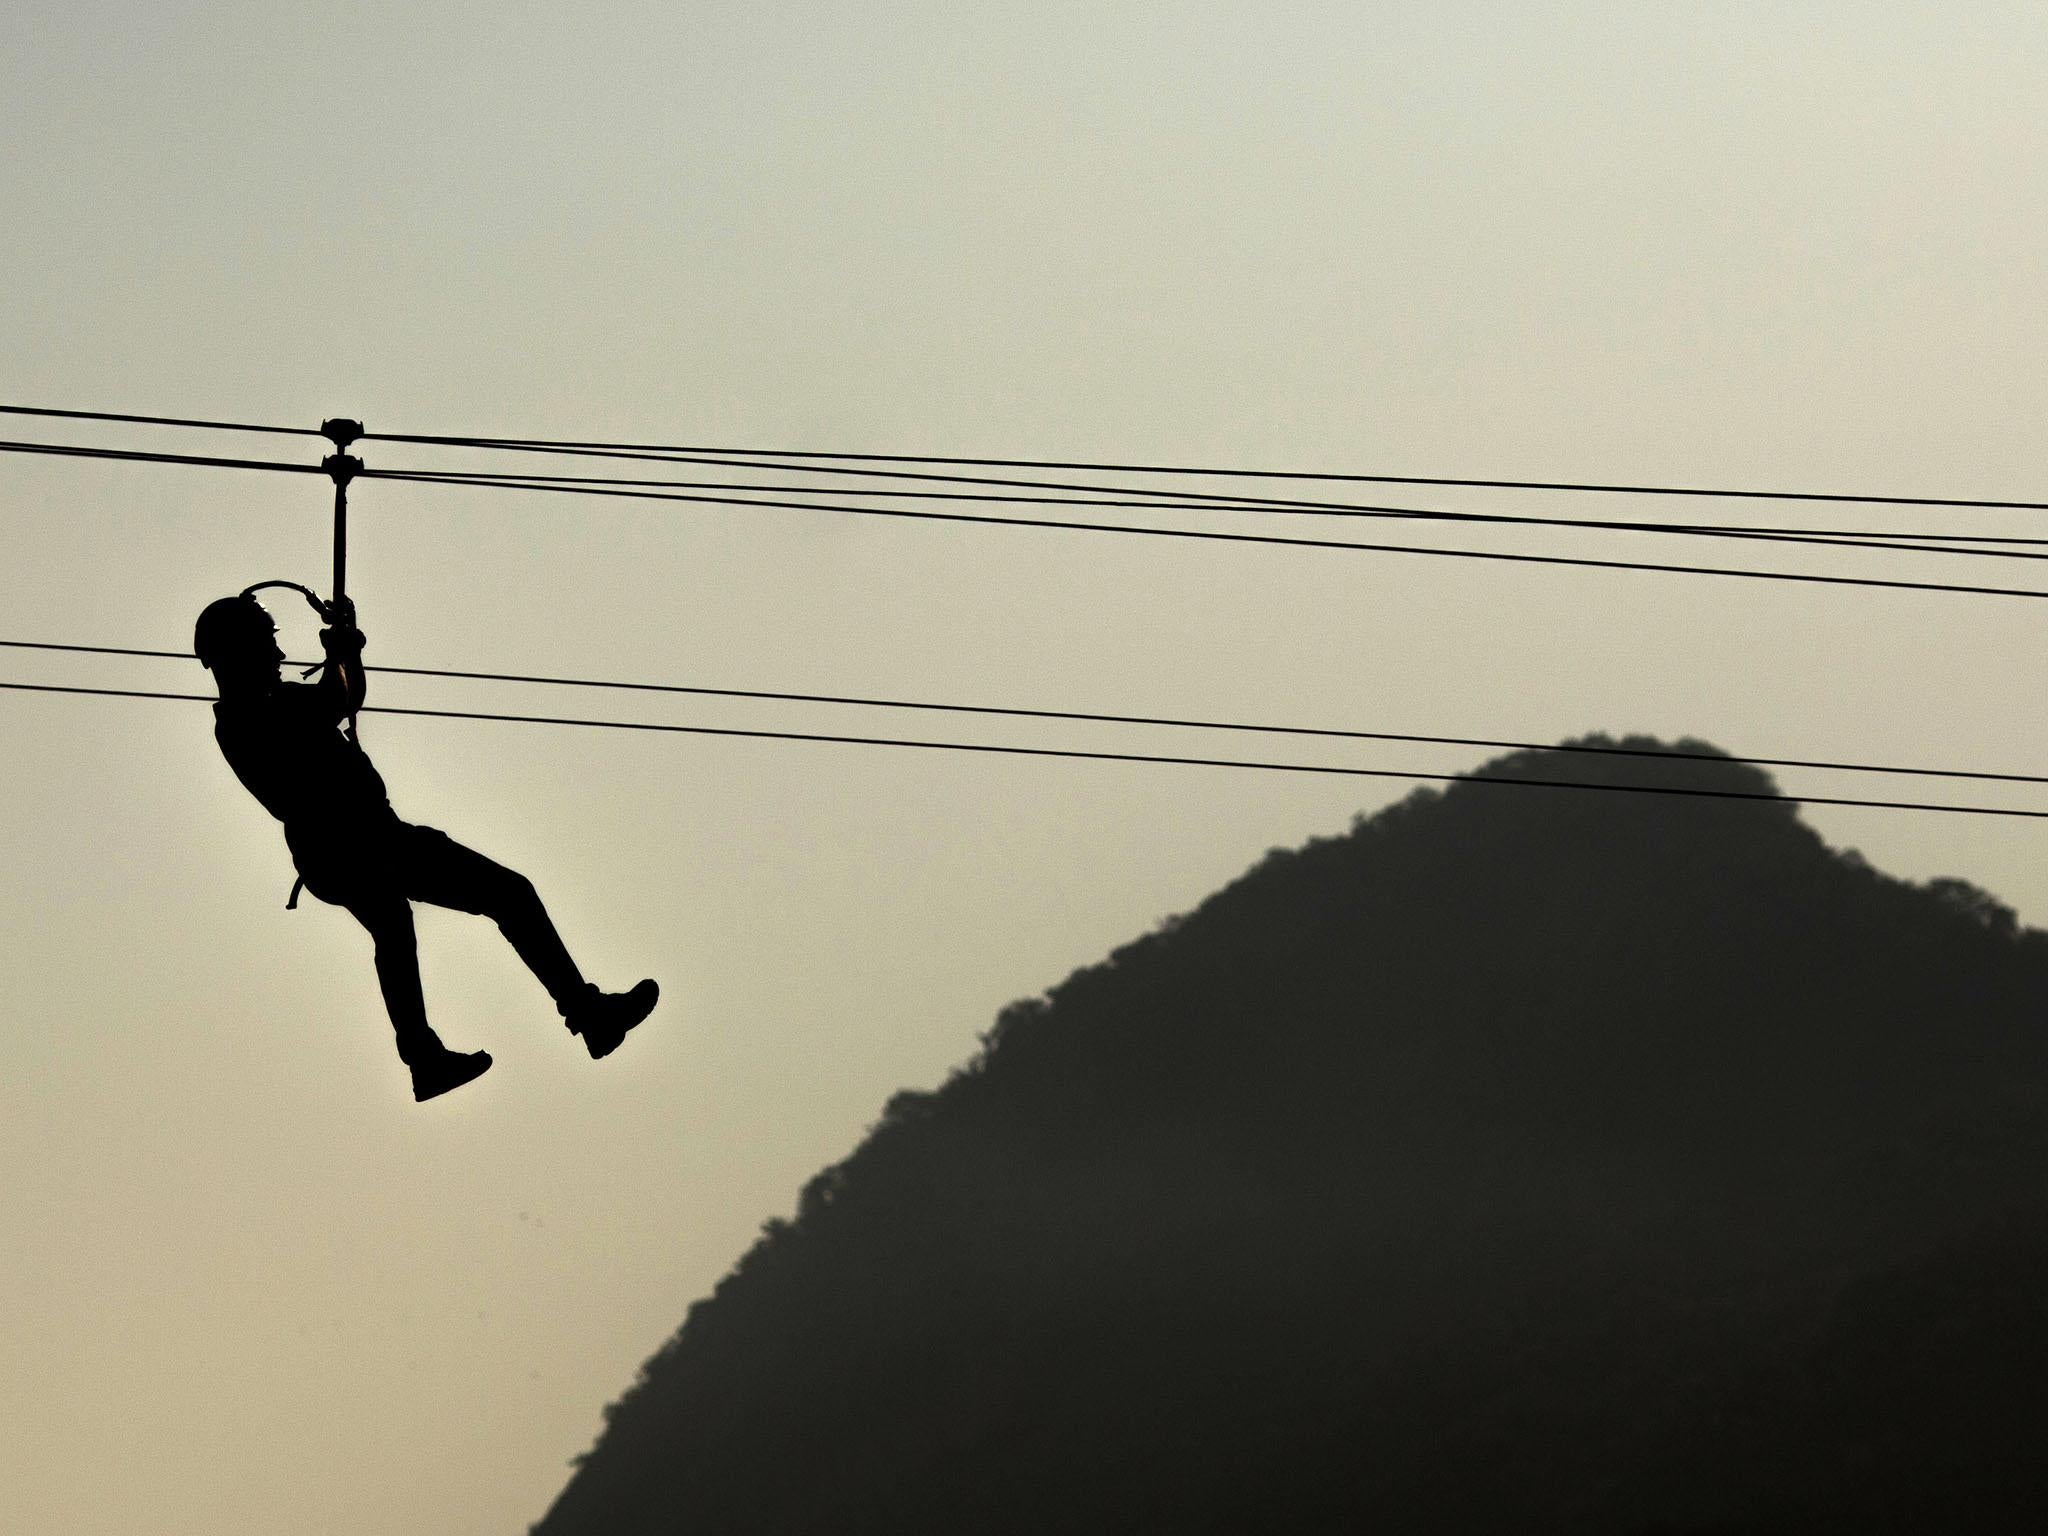 Man Dies After Colliding With Wife On Zipline Honeymoon In About A Foot And You Can Repurpose Those Wires Within The Controller Honduras Independent